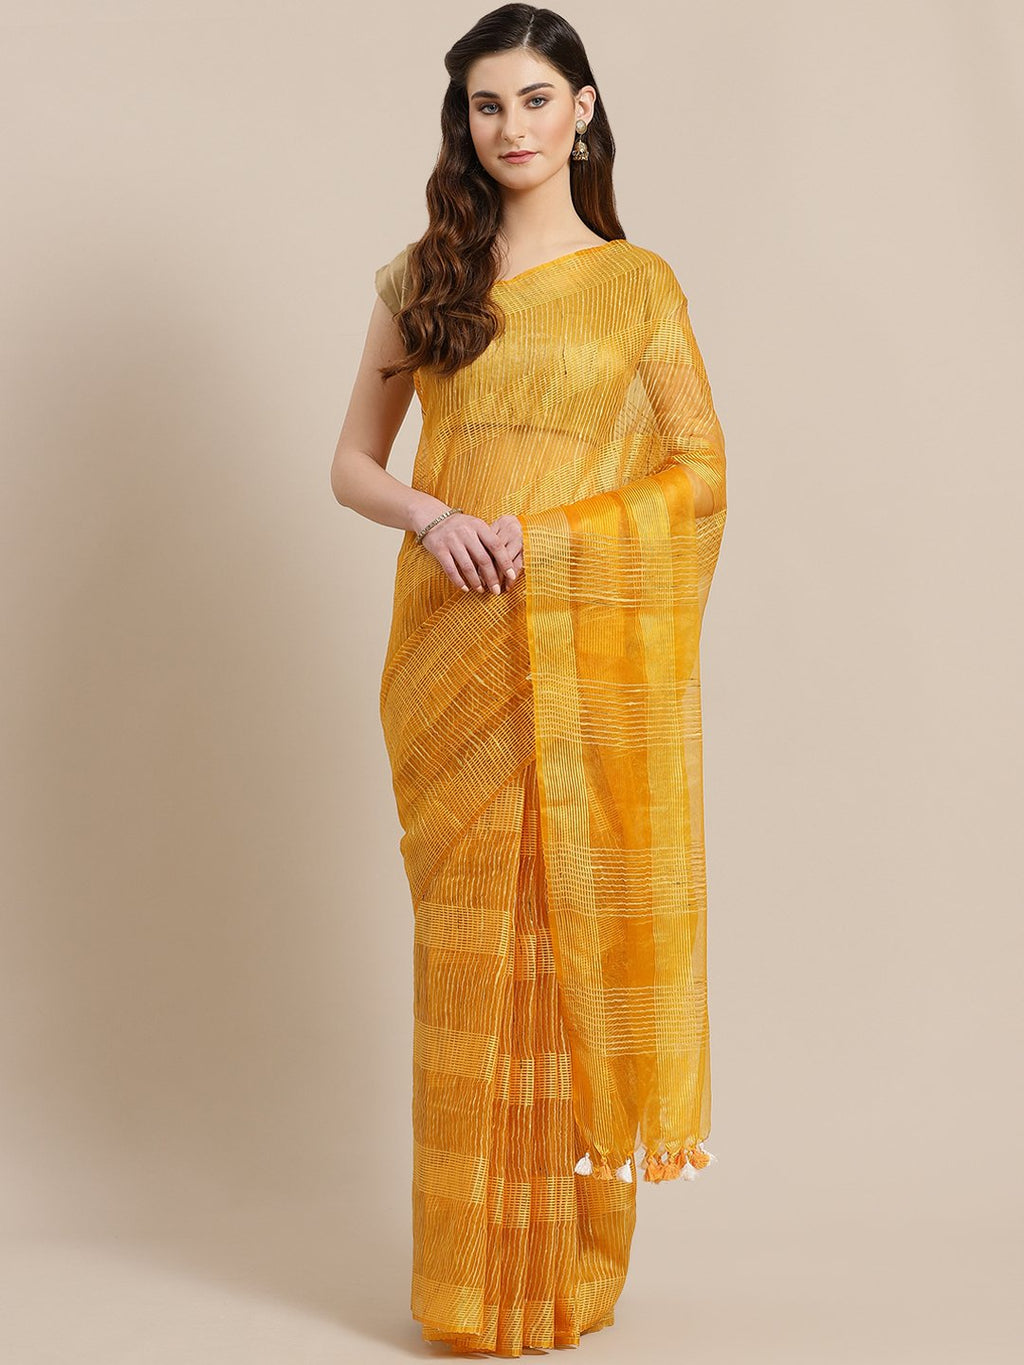 Mustard Yellow Self-Checked Handwoven Saree-Saree-Kalakari India-ALBGSA0024-Hand Crafted Sustainable Fabrics, Kota Silk, Linen, Sarees, Traditional Weave-[Linen,Ethnic,wear,Fashionista,Handloom,Handicraft,Indigo,blockprint,block,print,Cotton,Chanderi,Blue, latest,classy,party,bollywood,trendy,summer,style,traditional,formal,elegant,unique,style,hand,block,print, dabu,booti,gift,present,glamorous,affordable,collectible,Sari,Saree,printed, holi, Diwali, birthday, anniversary, sustainable, organic,